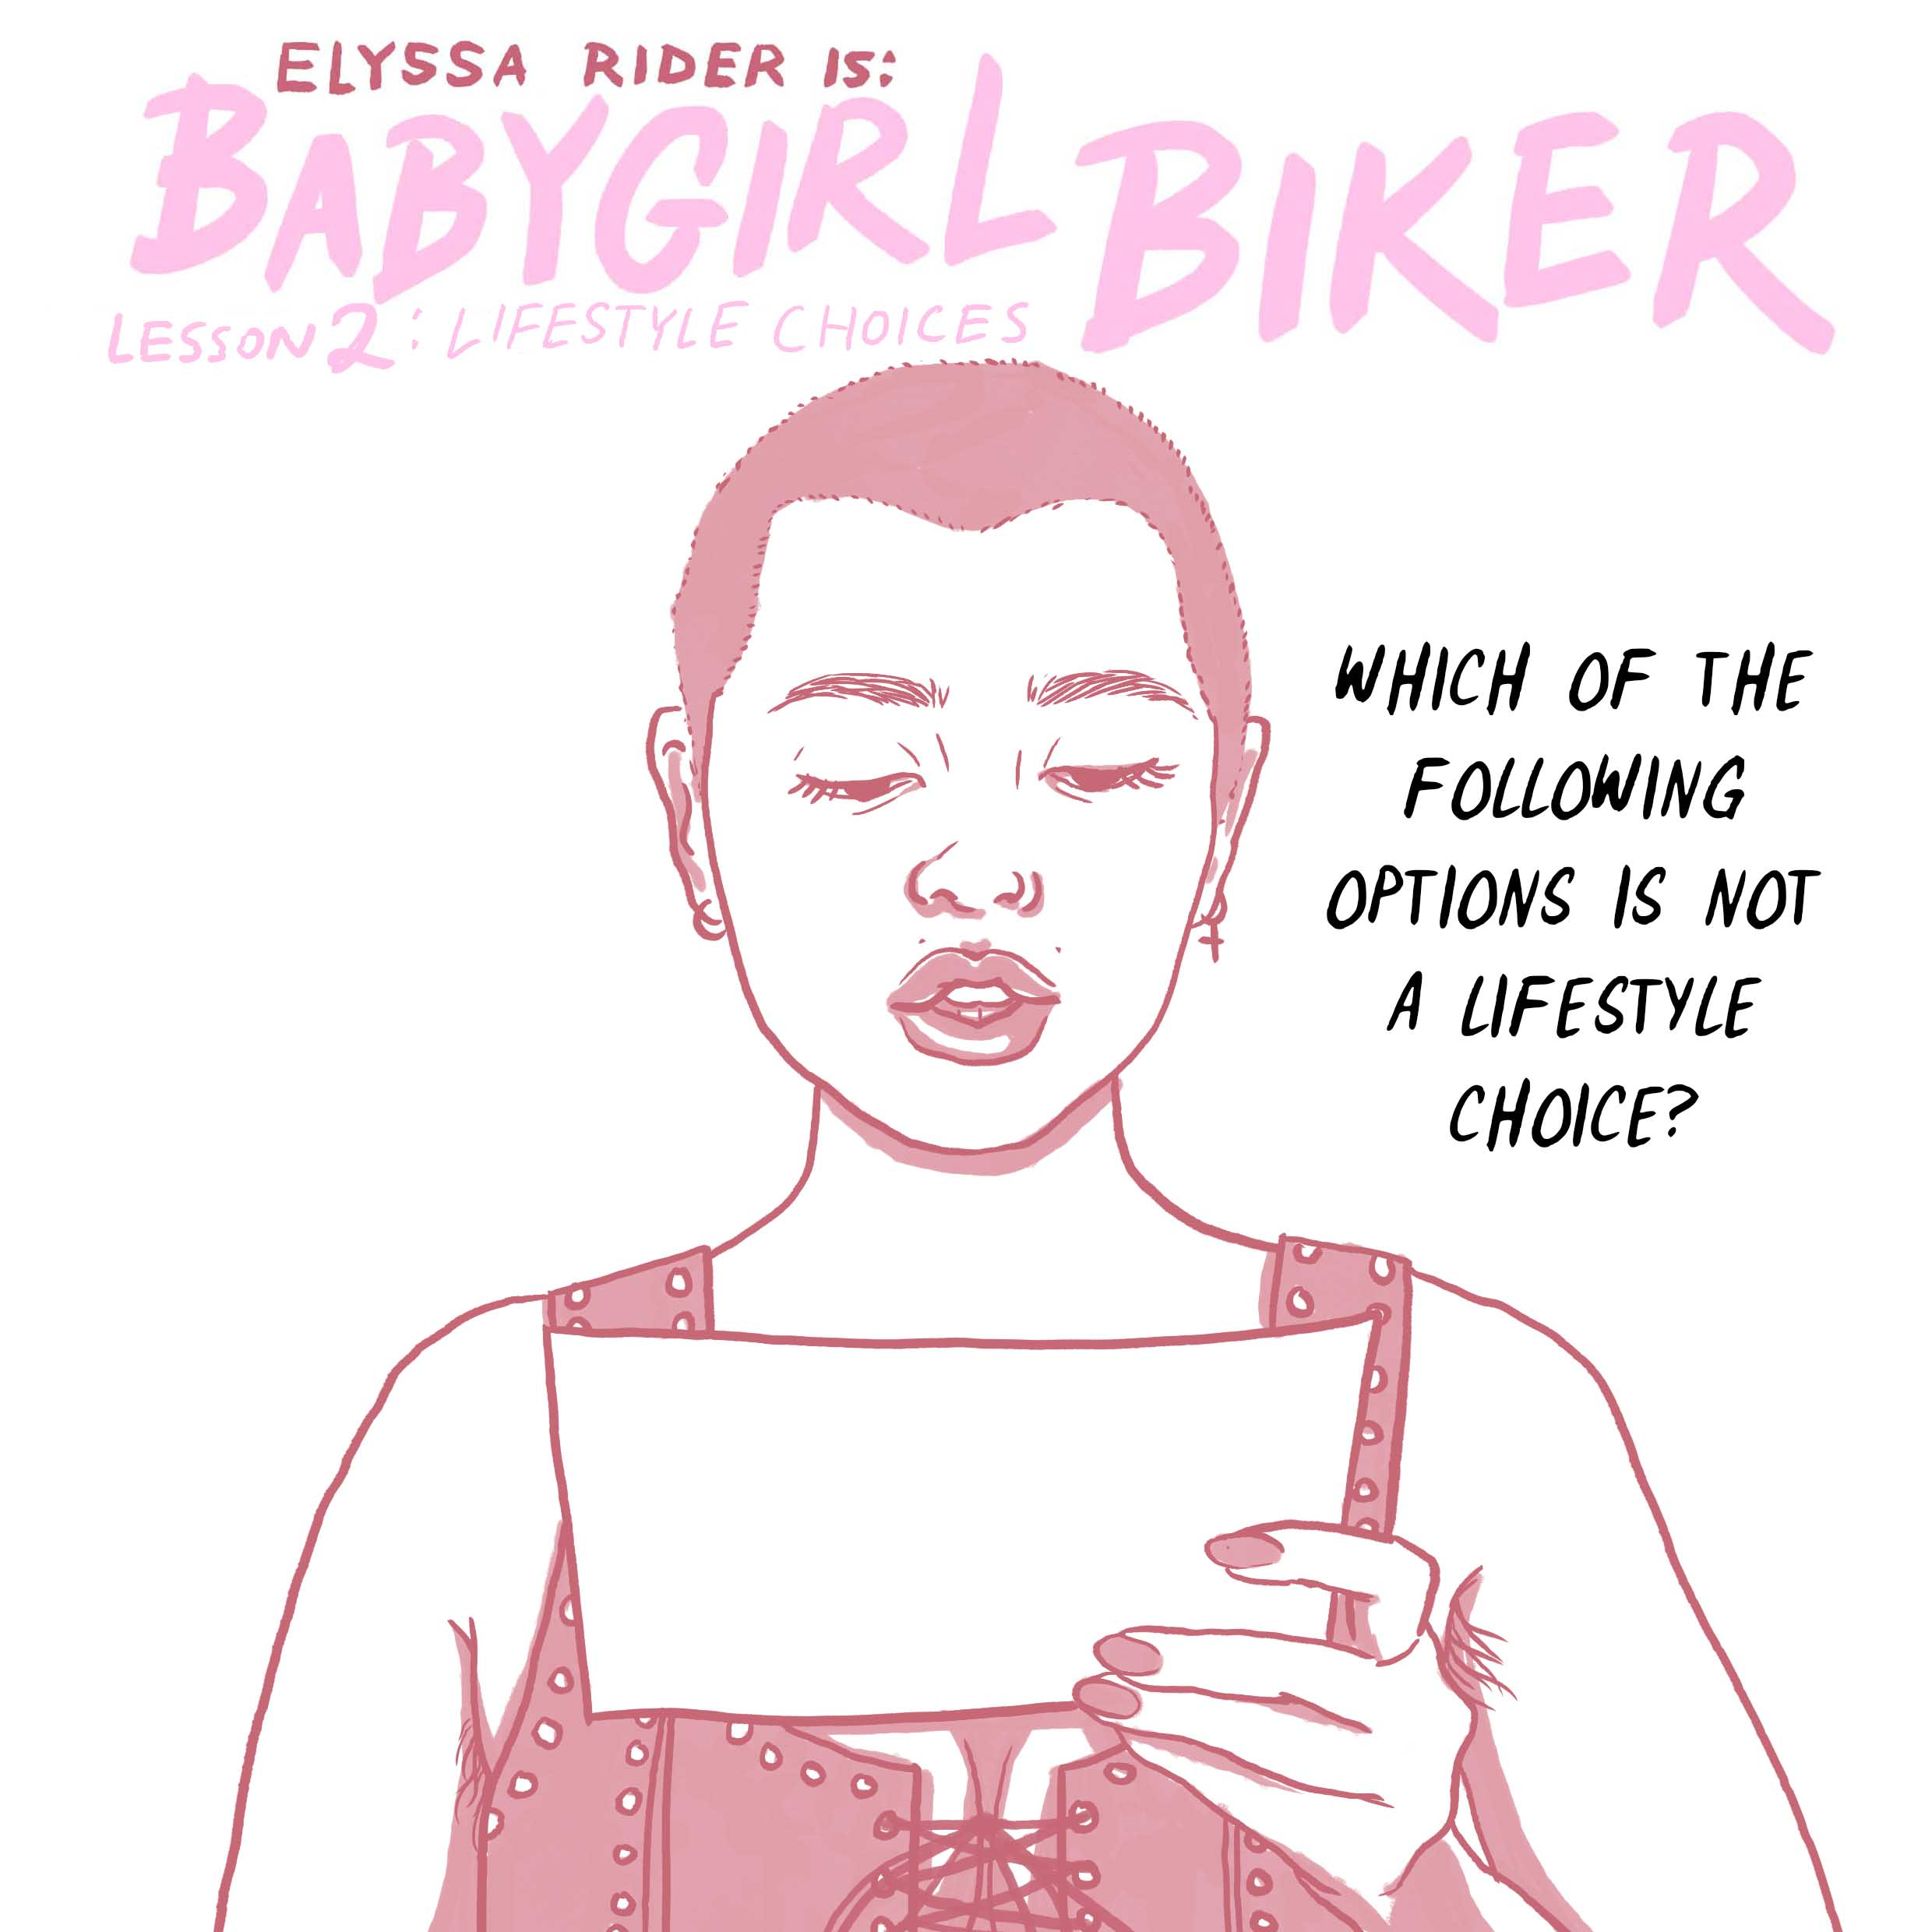 BBG Training - Lifestyle Choices Comic- Elyssa Rider